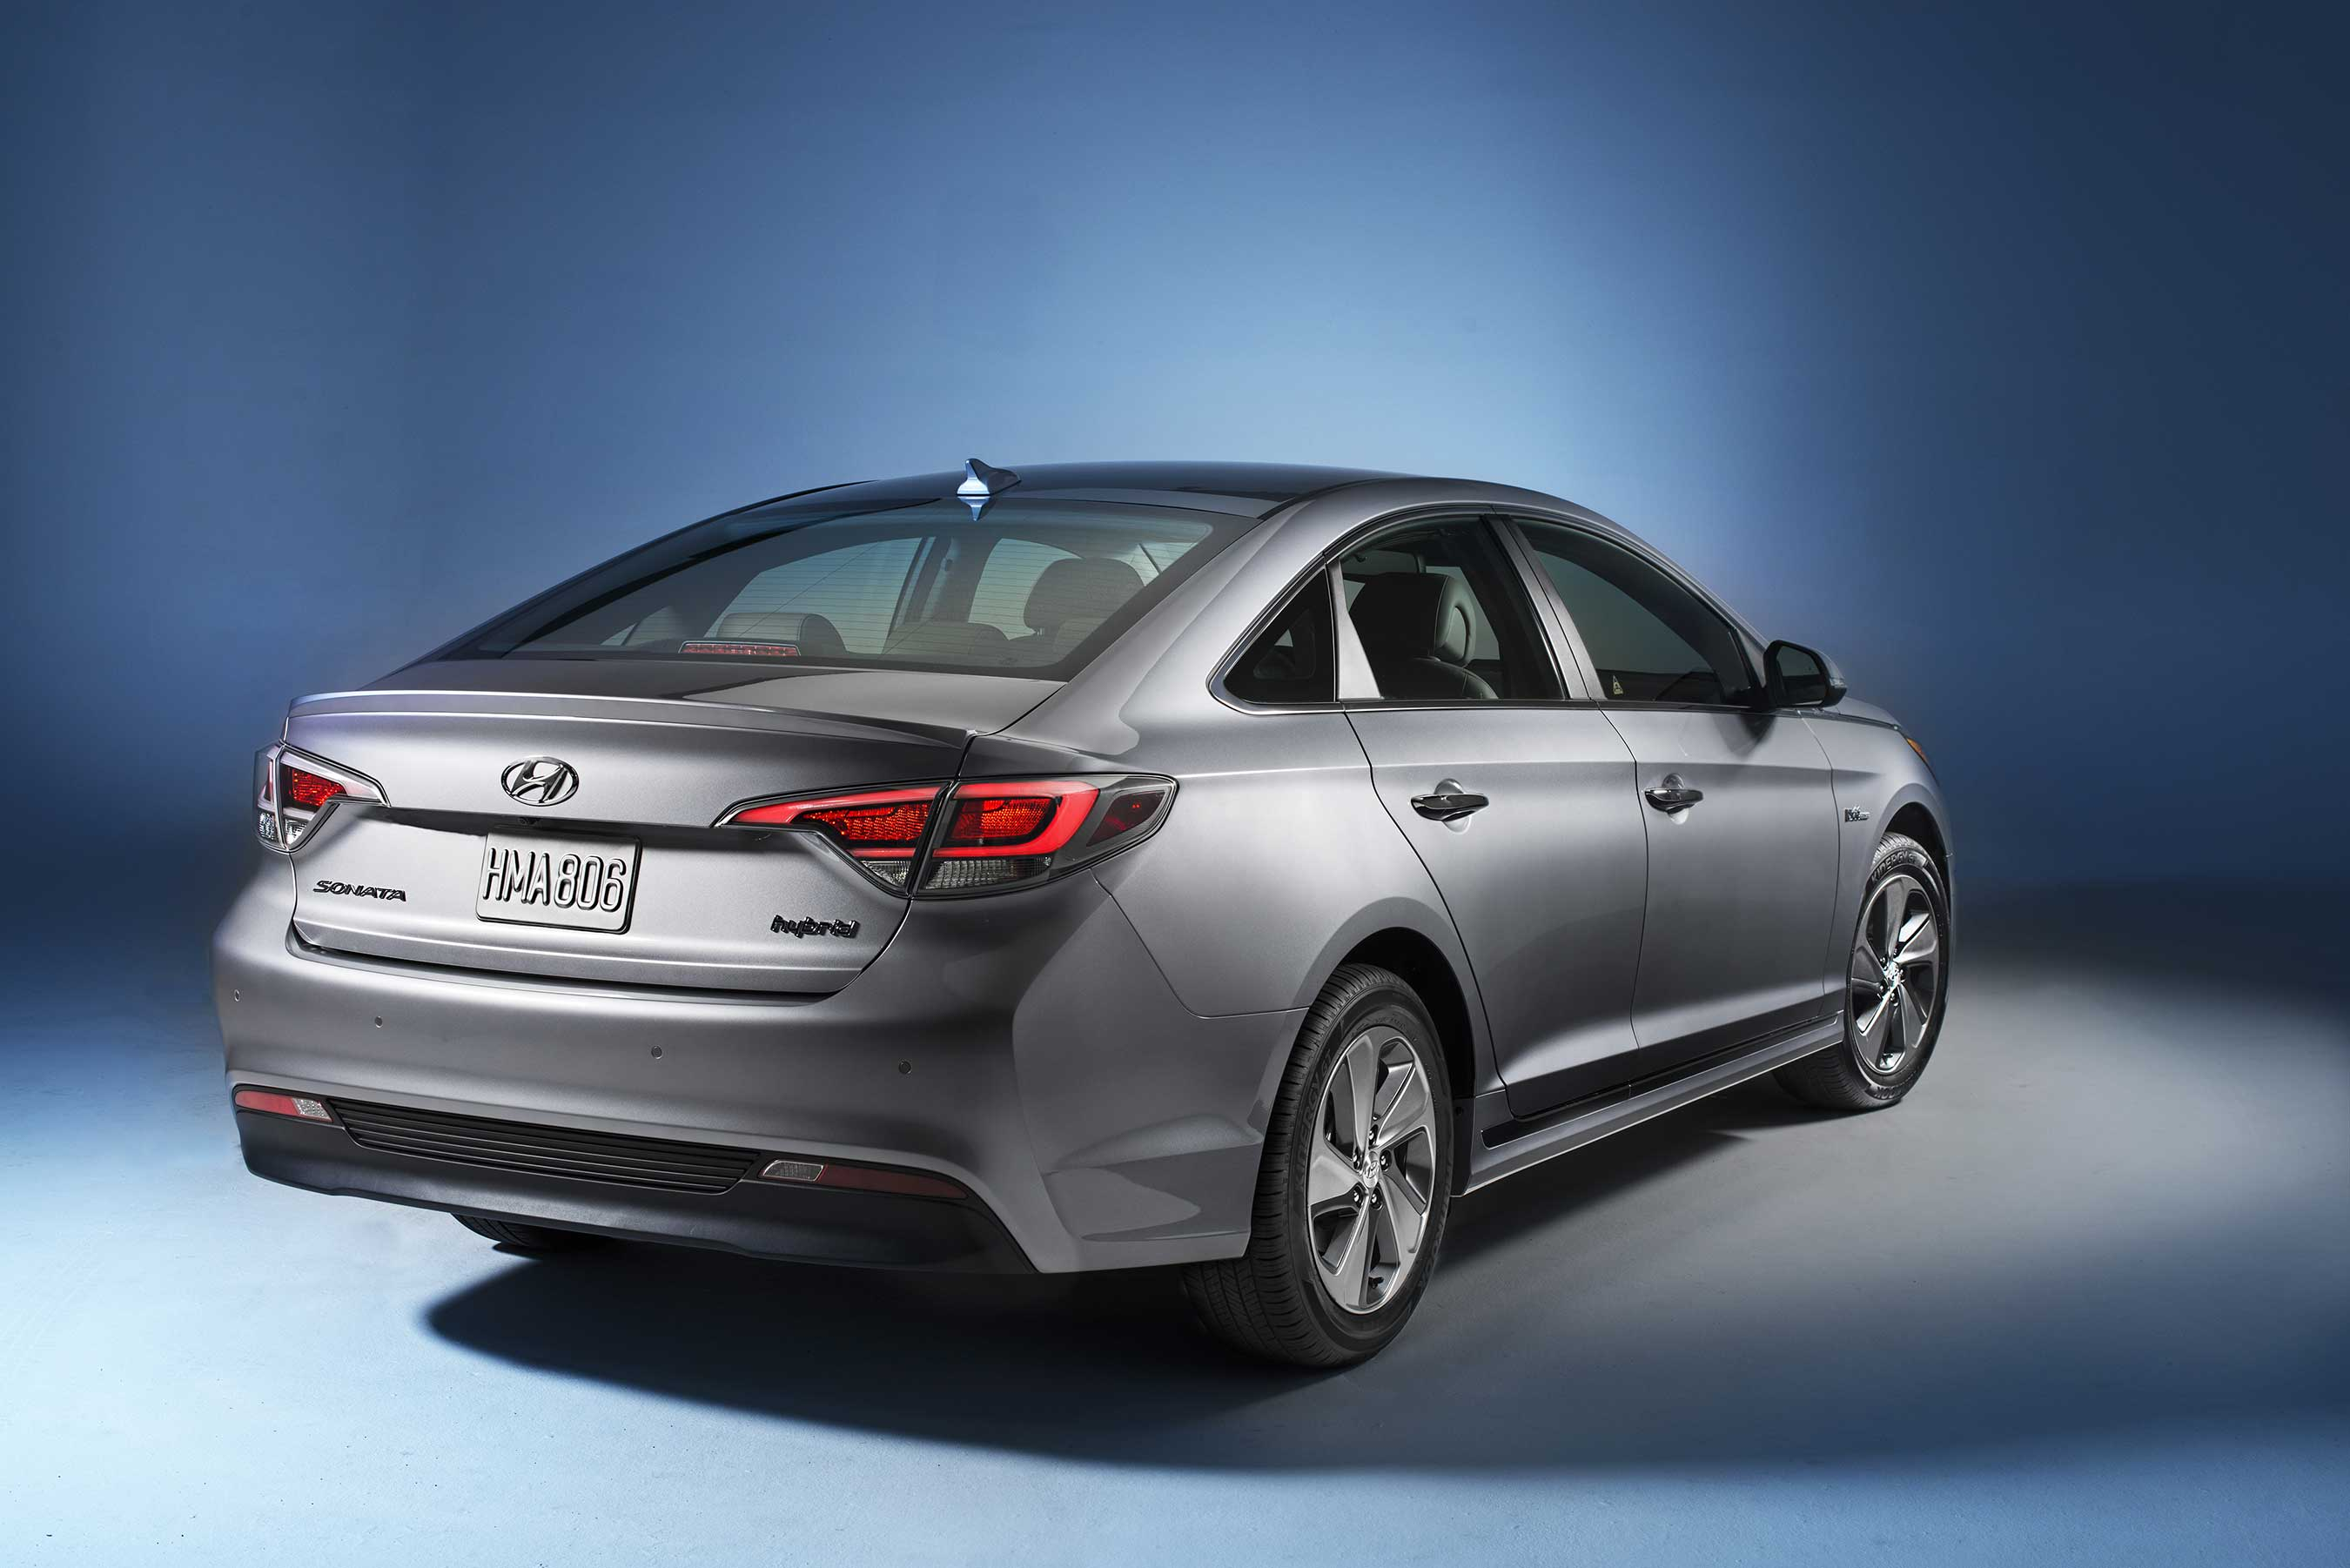 2016 Hyundai Sonata Plug In Hybrid Expected To Deliver 22